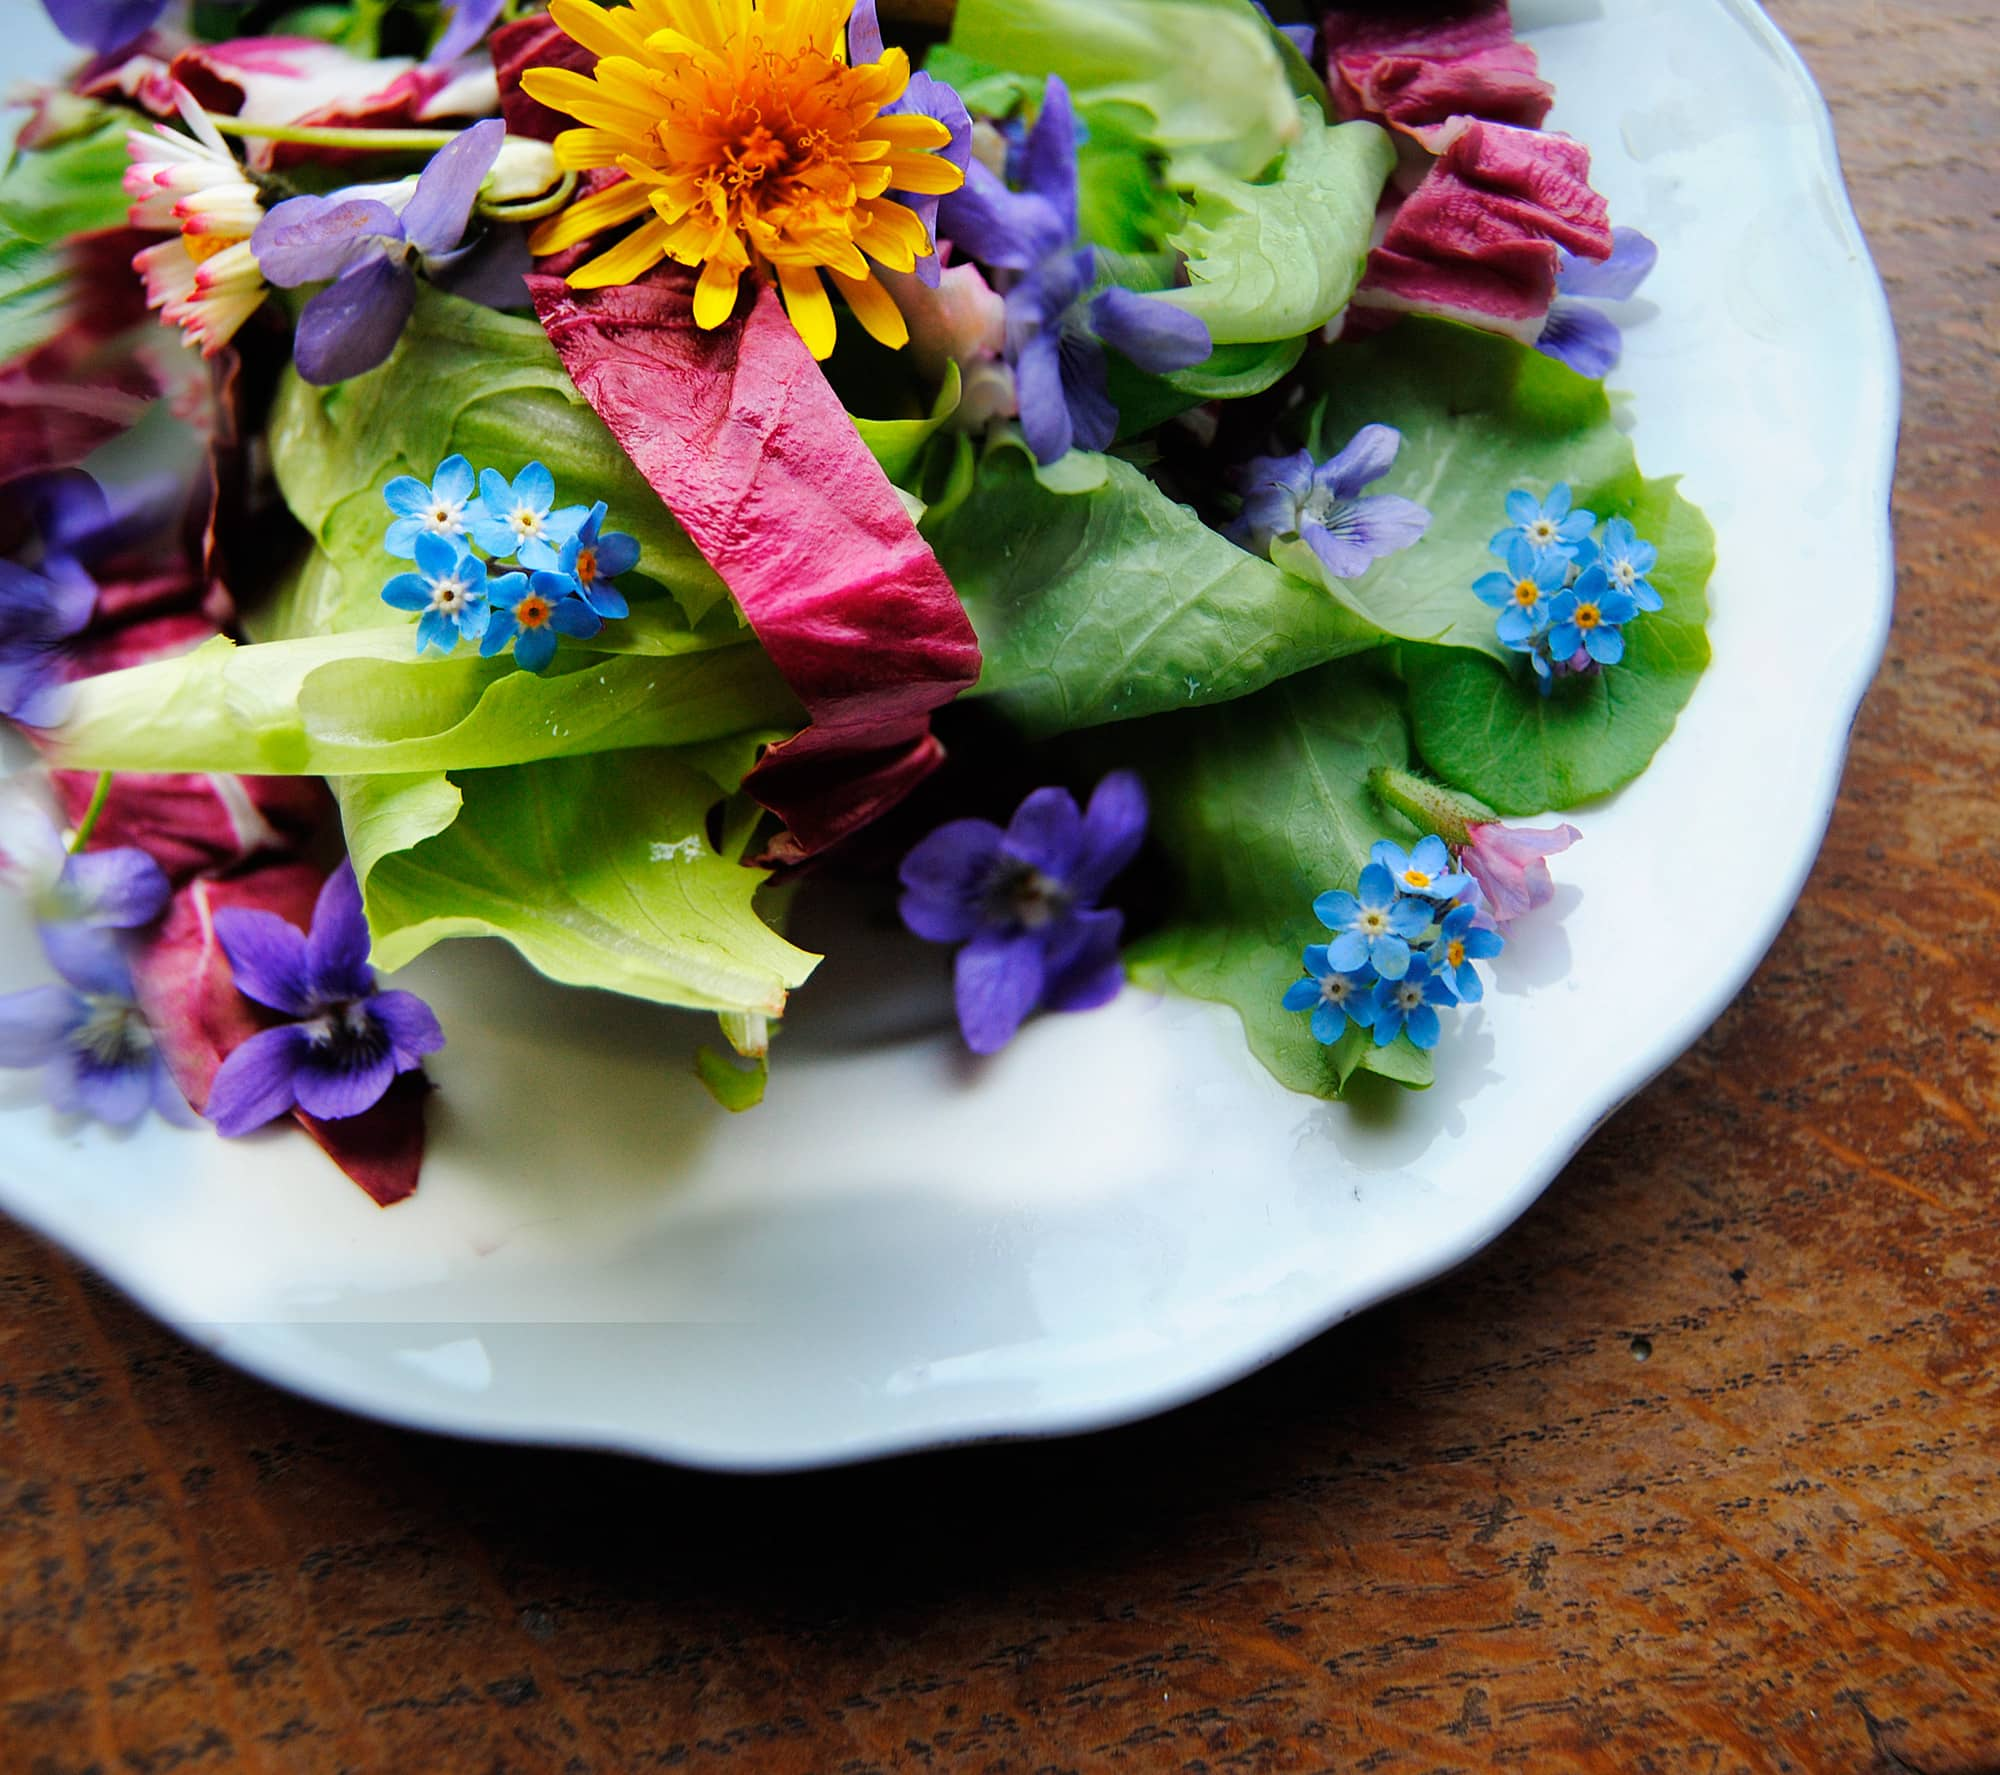 5 Flowers You Probably Didn't Know You Could Eat